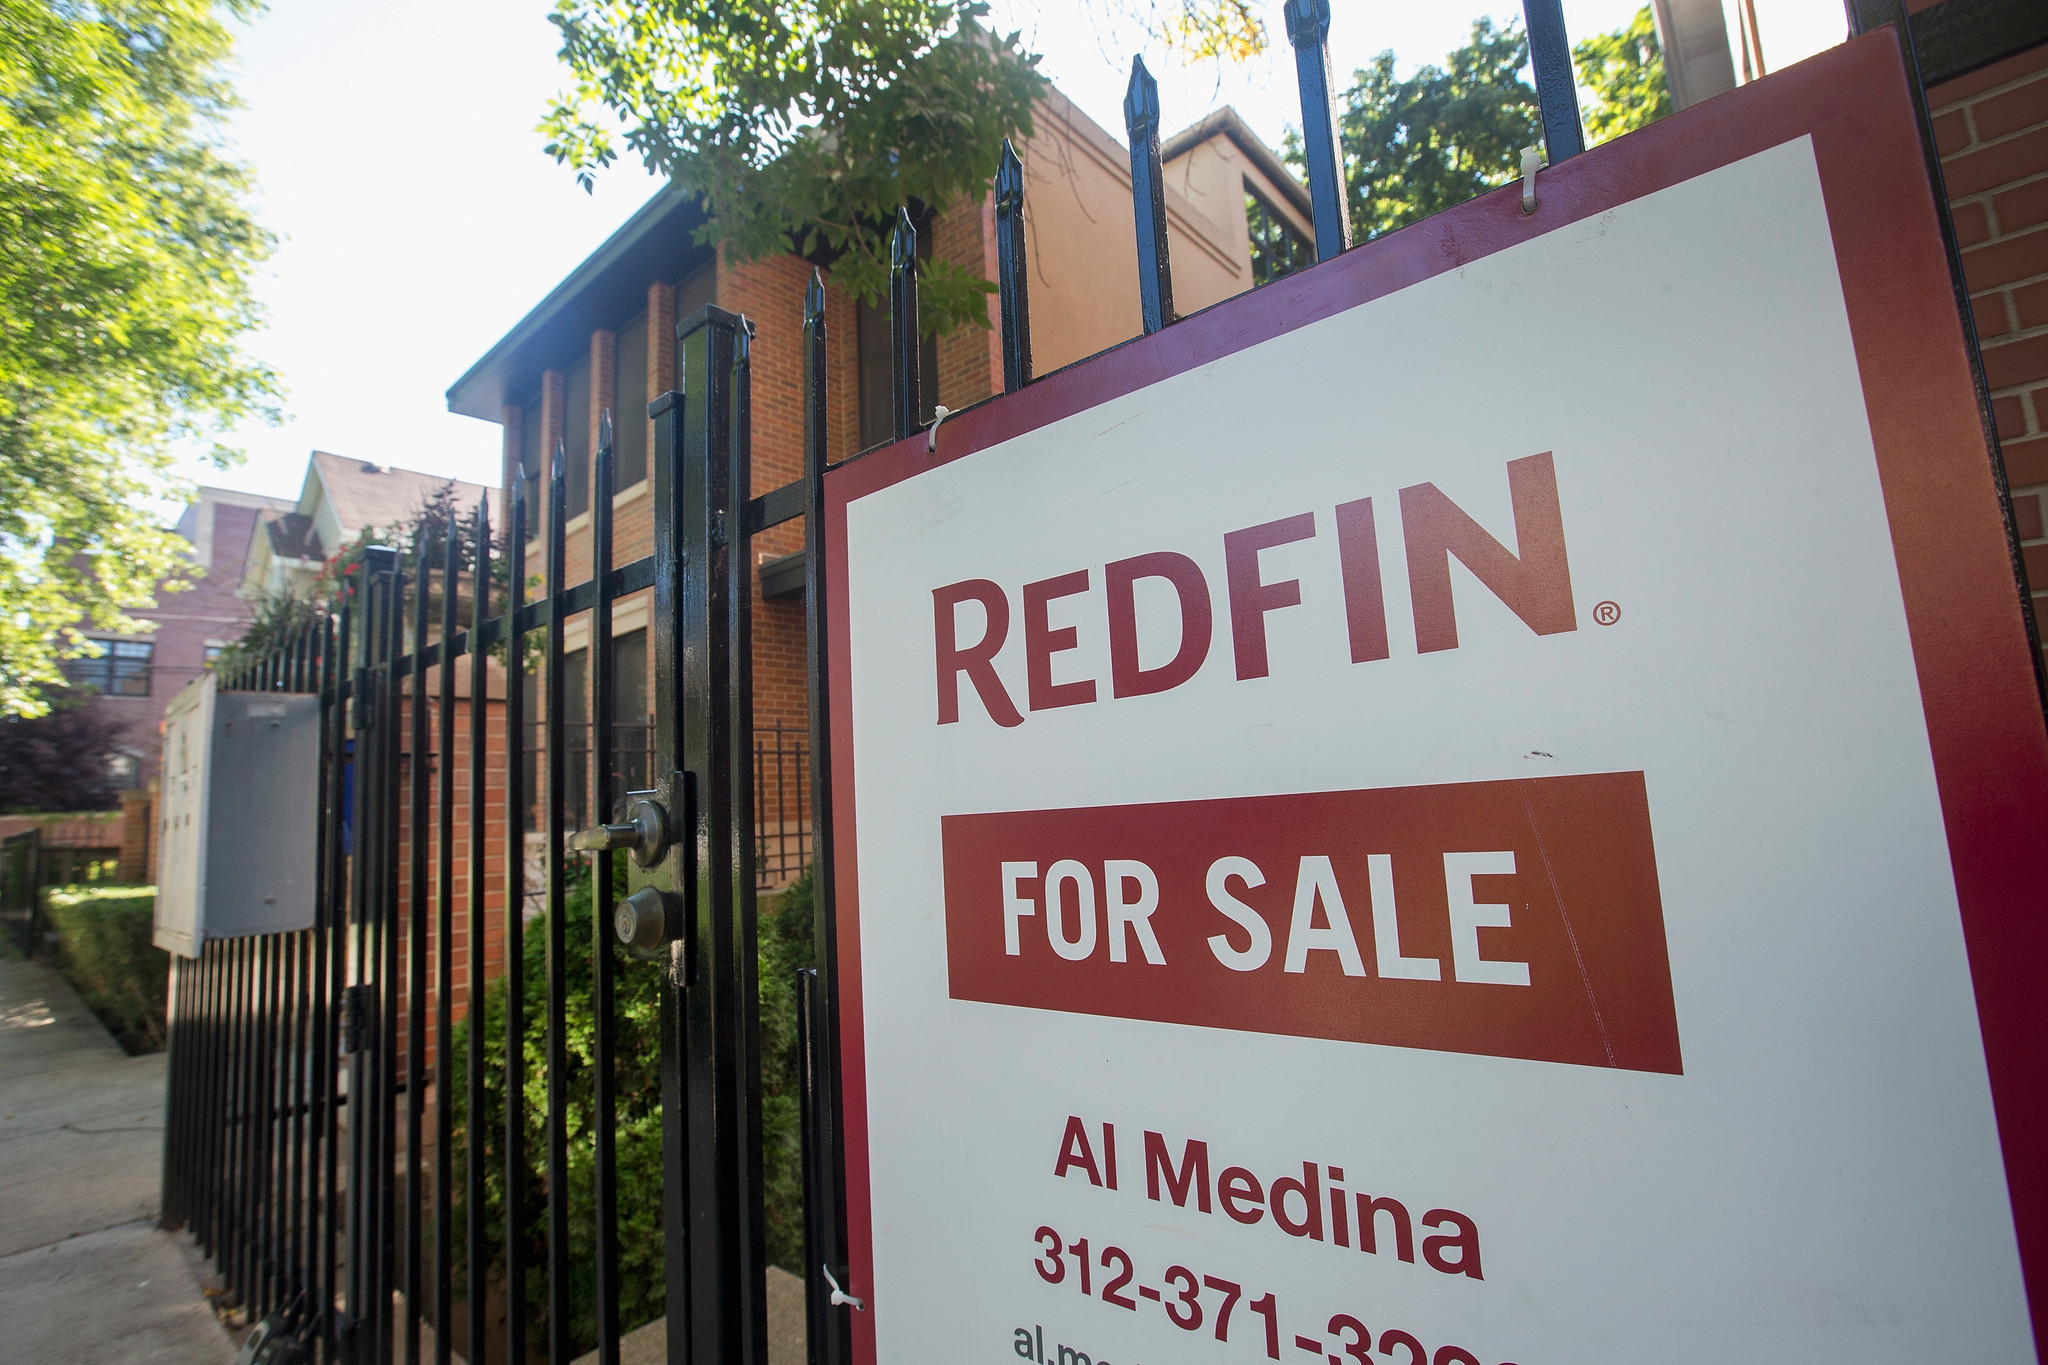 House flipping thriving in Chicago area, study says